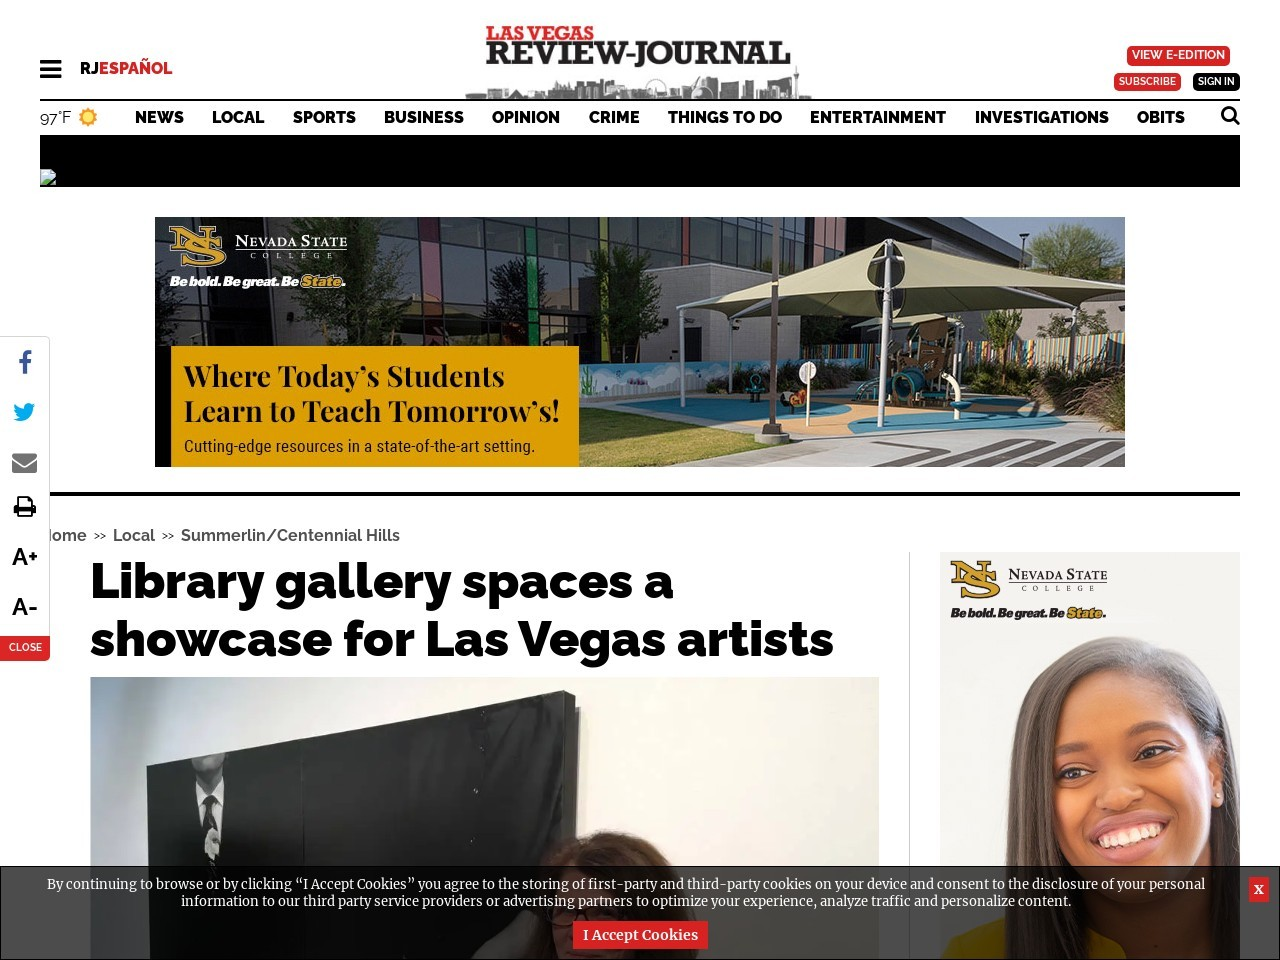 Library gallery spaces a showcase for Las Vegas artists